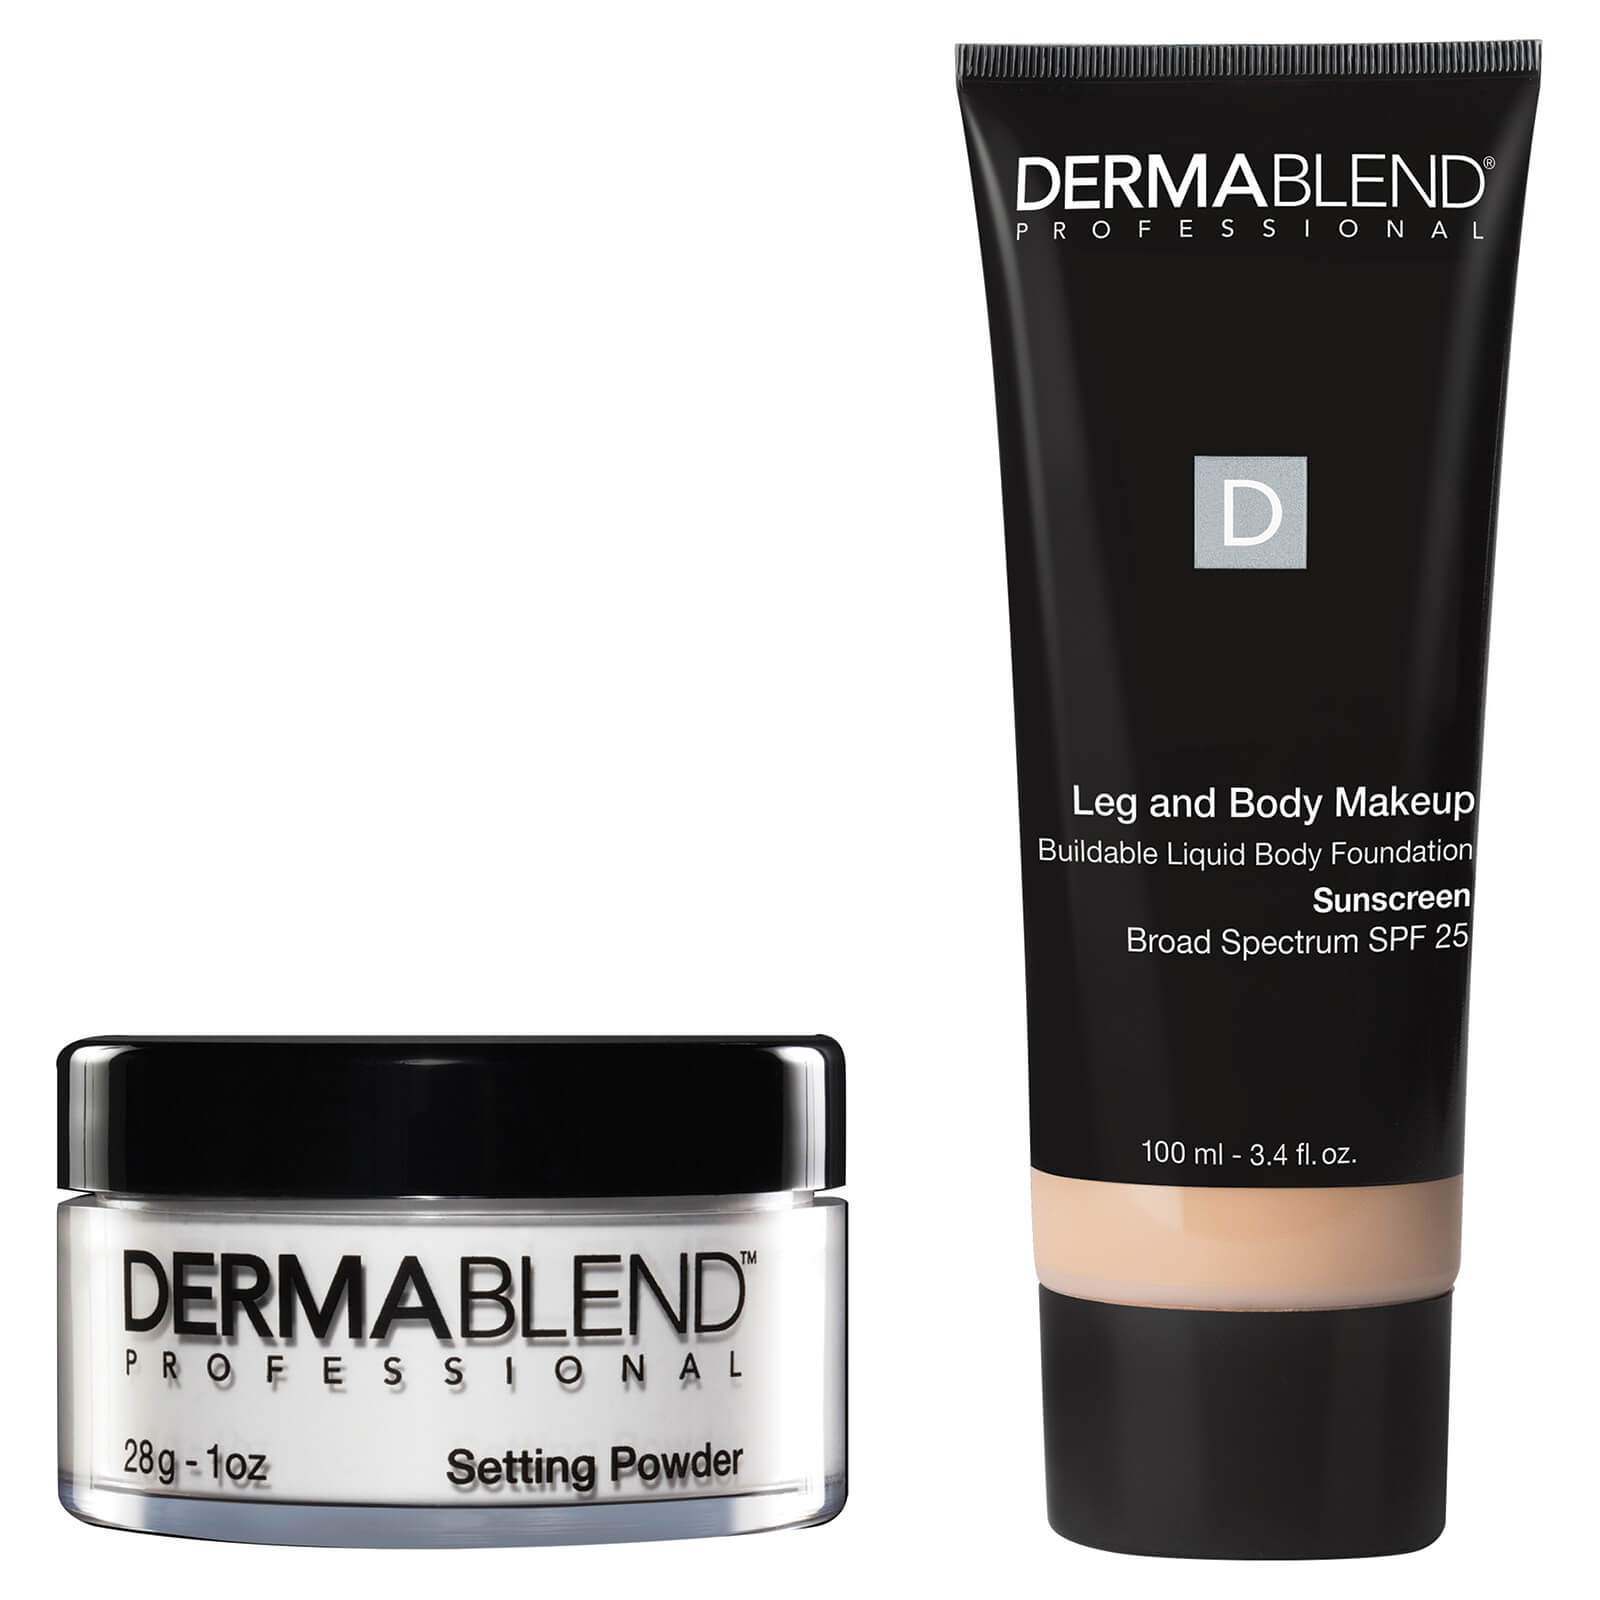 Dermablend Tattoo Coverage (Various Shades) | SkinStore